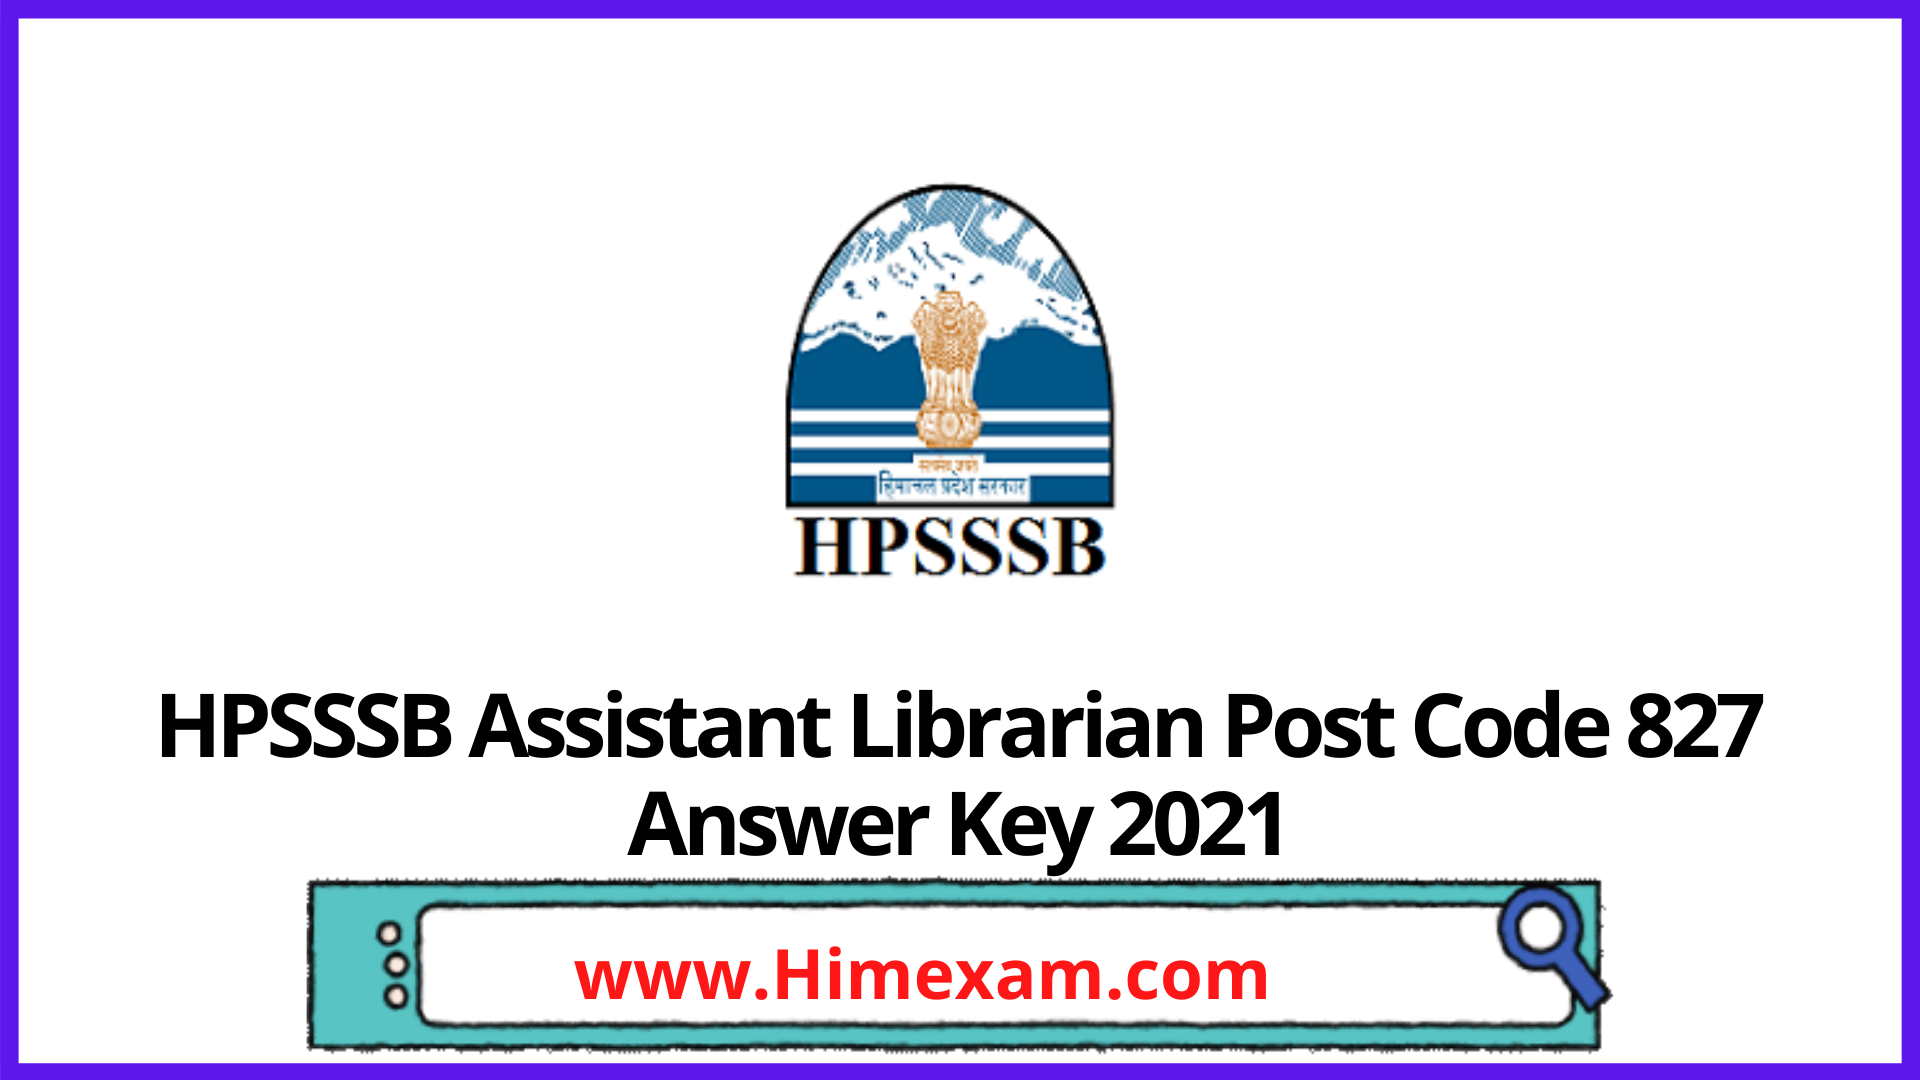 HPSSSB  Assistant Librarian Post Code 827 Answer Key 2021